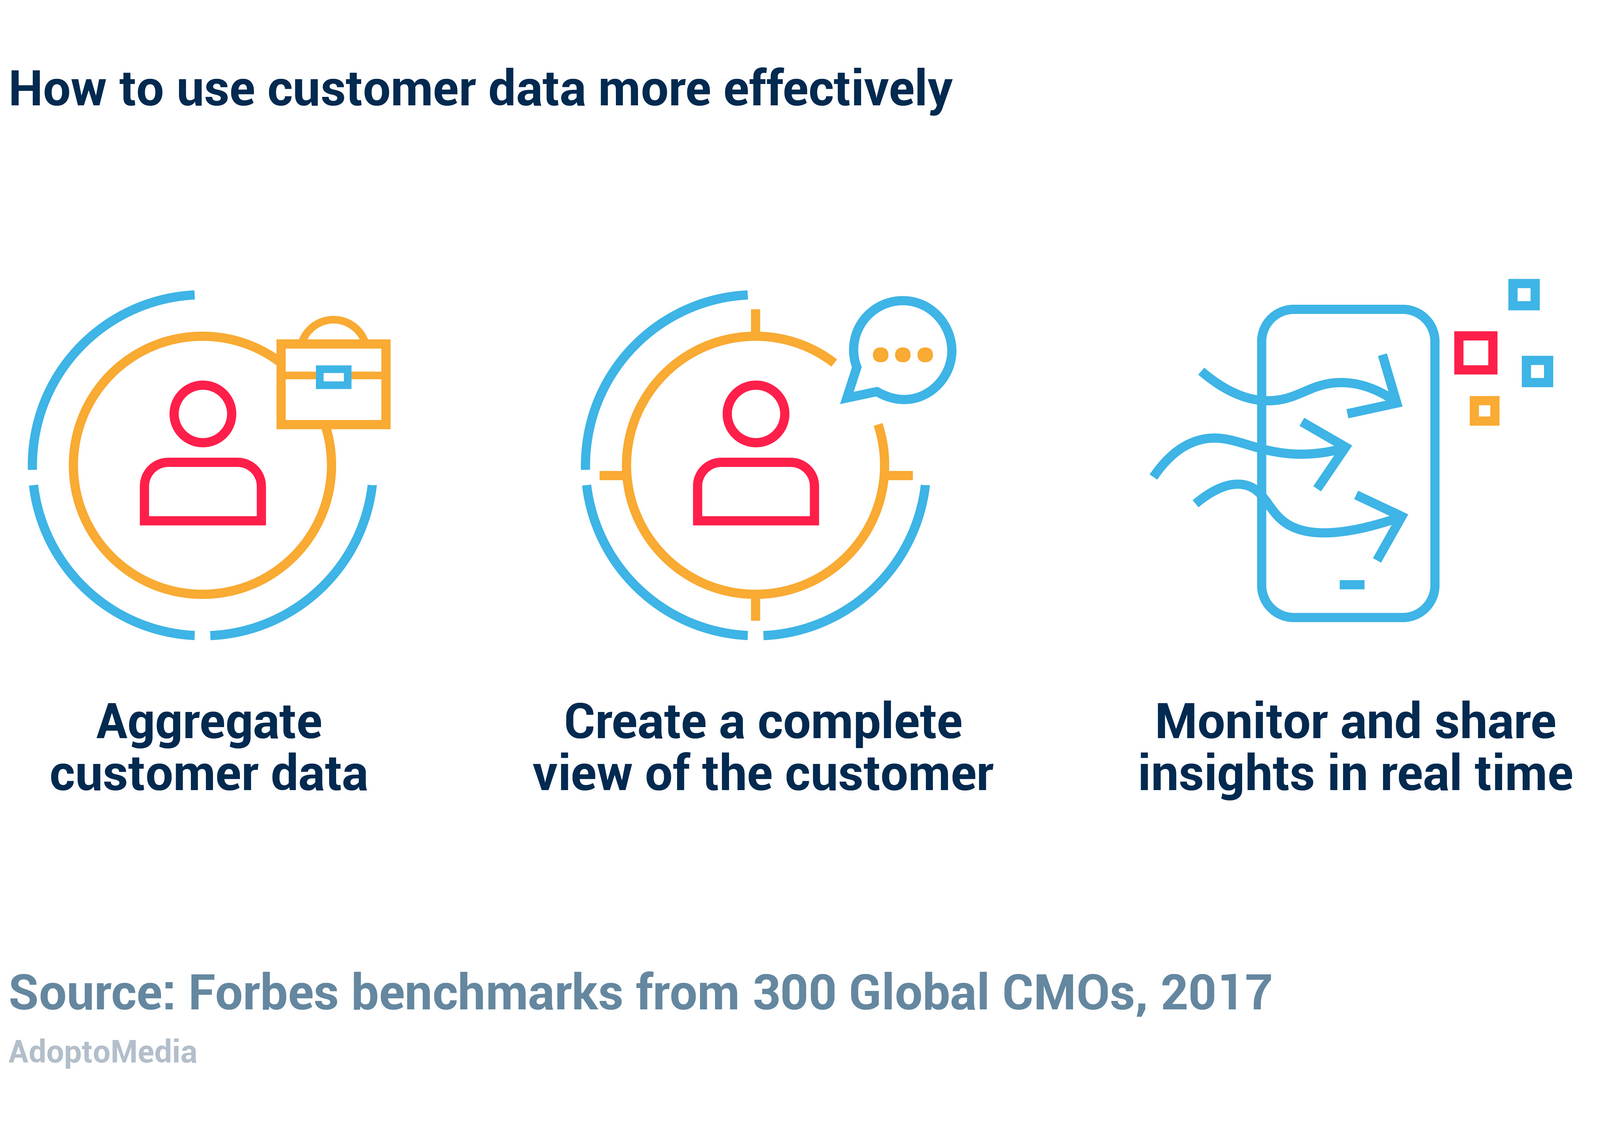 marketing capabilities, top marketers, customer data, customer insight, customer data aggregation, customer data integration, client profile, customer profile, customer journey